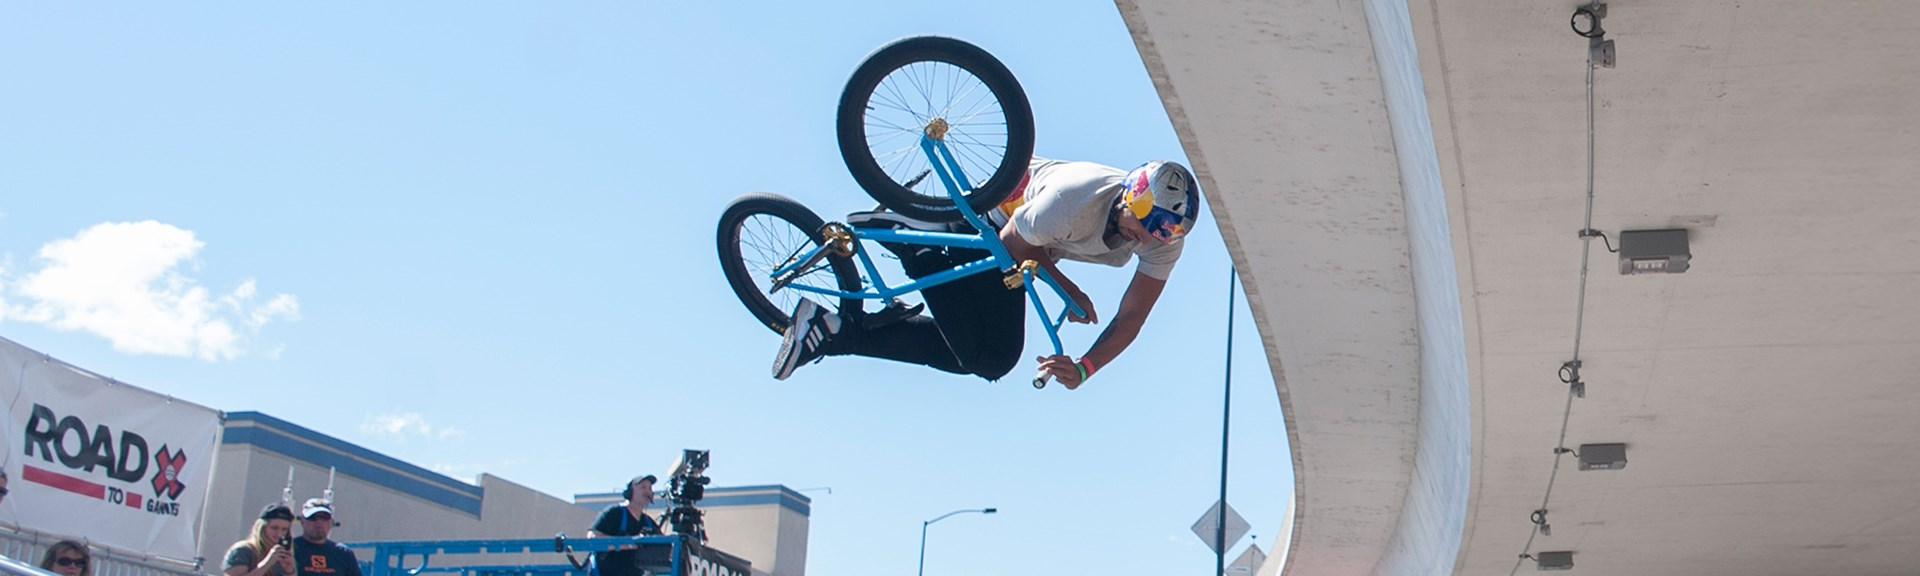 xgames-websiteheader-1200x320-1jpg